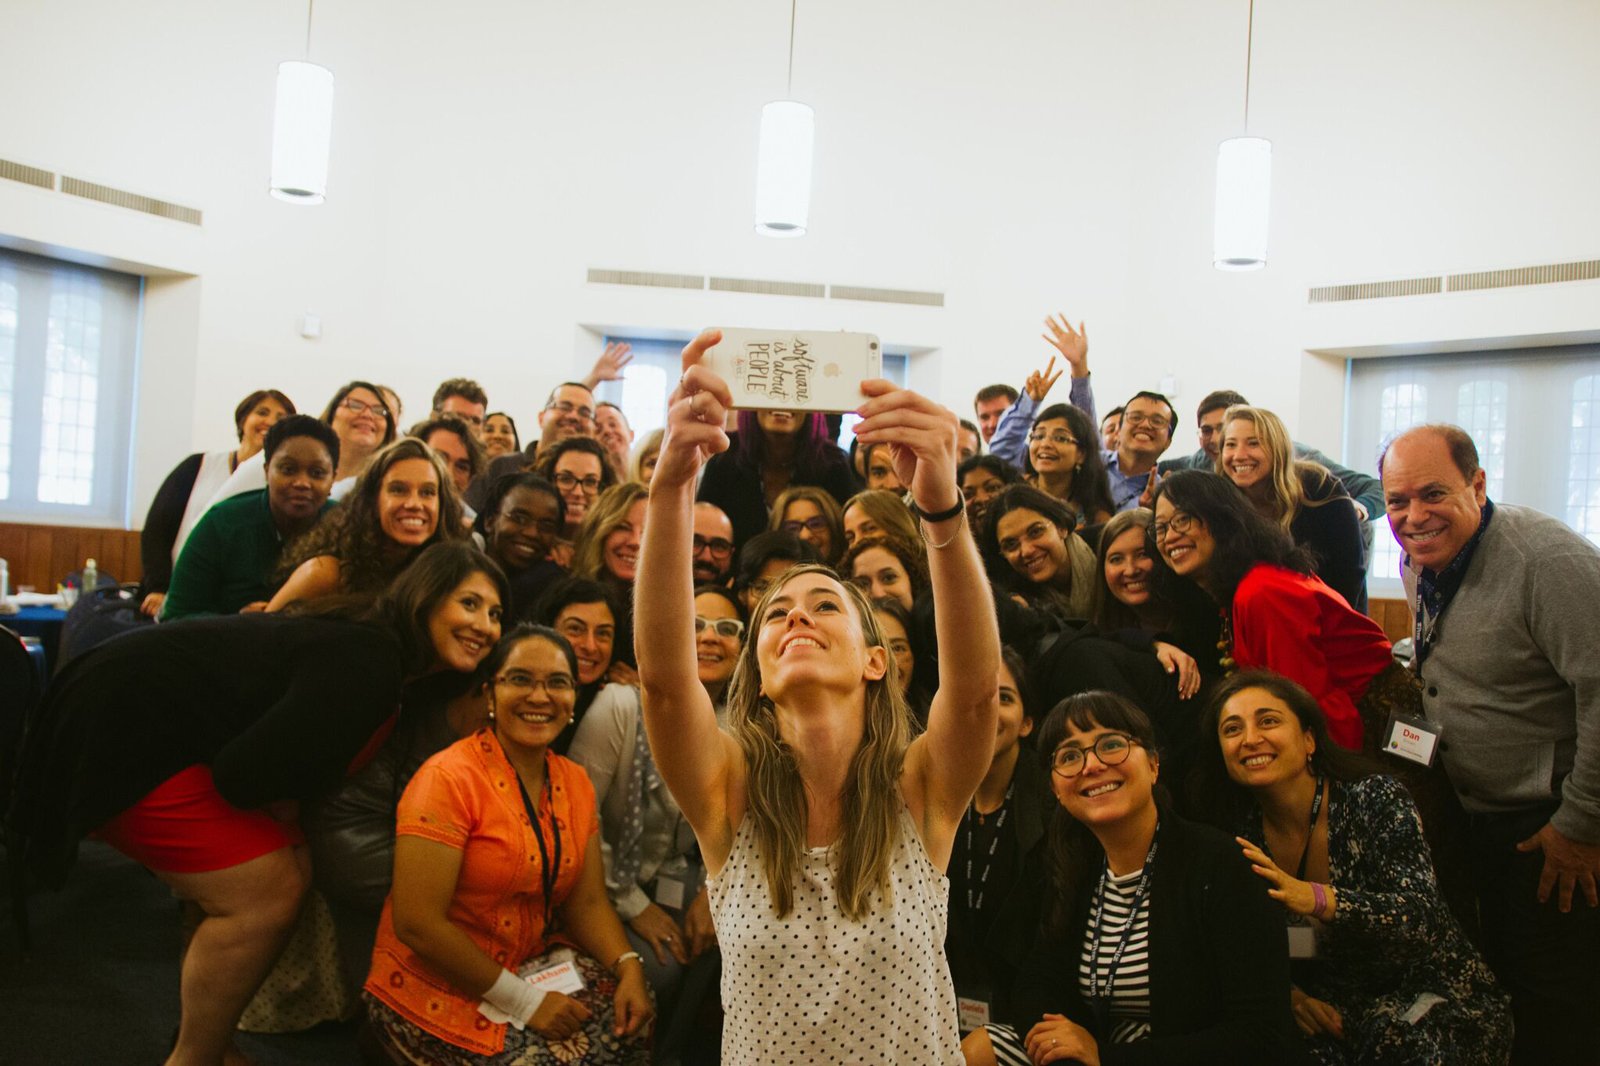 Sarah taking a selfie with a group of enthusiastic workshop attendees.